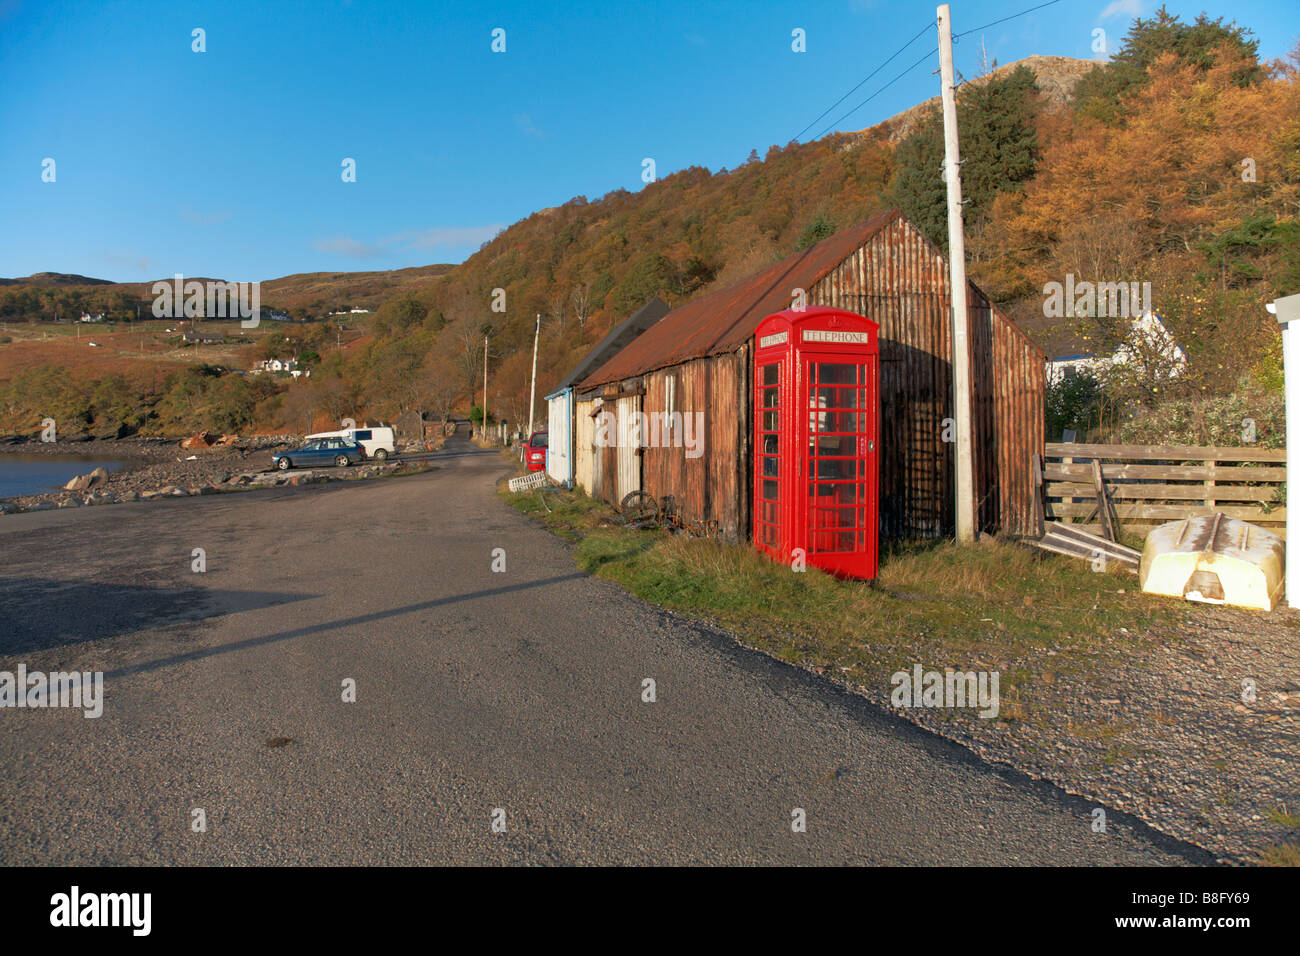 Corrugated iron Storage sheds, telephone kiosk and main street. Lower Diabaig, Wester Ross, Scotland - Stock Image